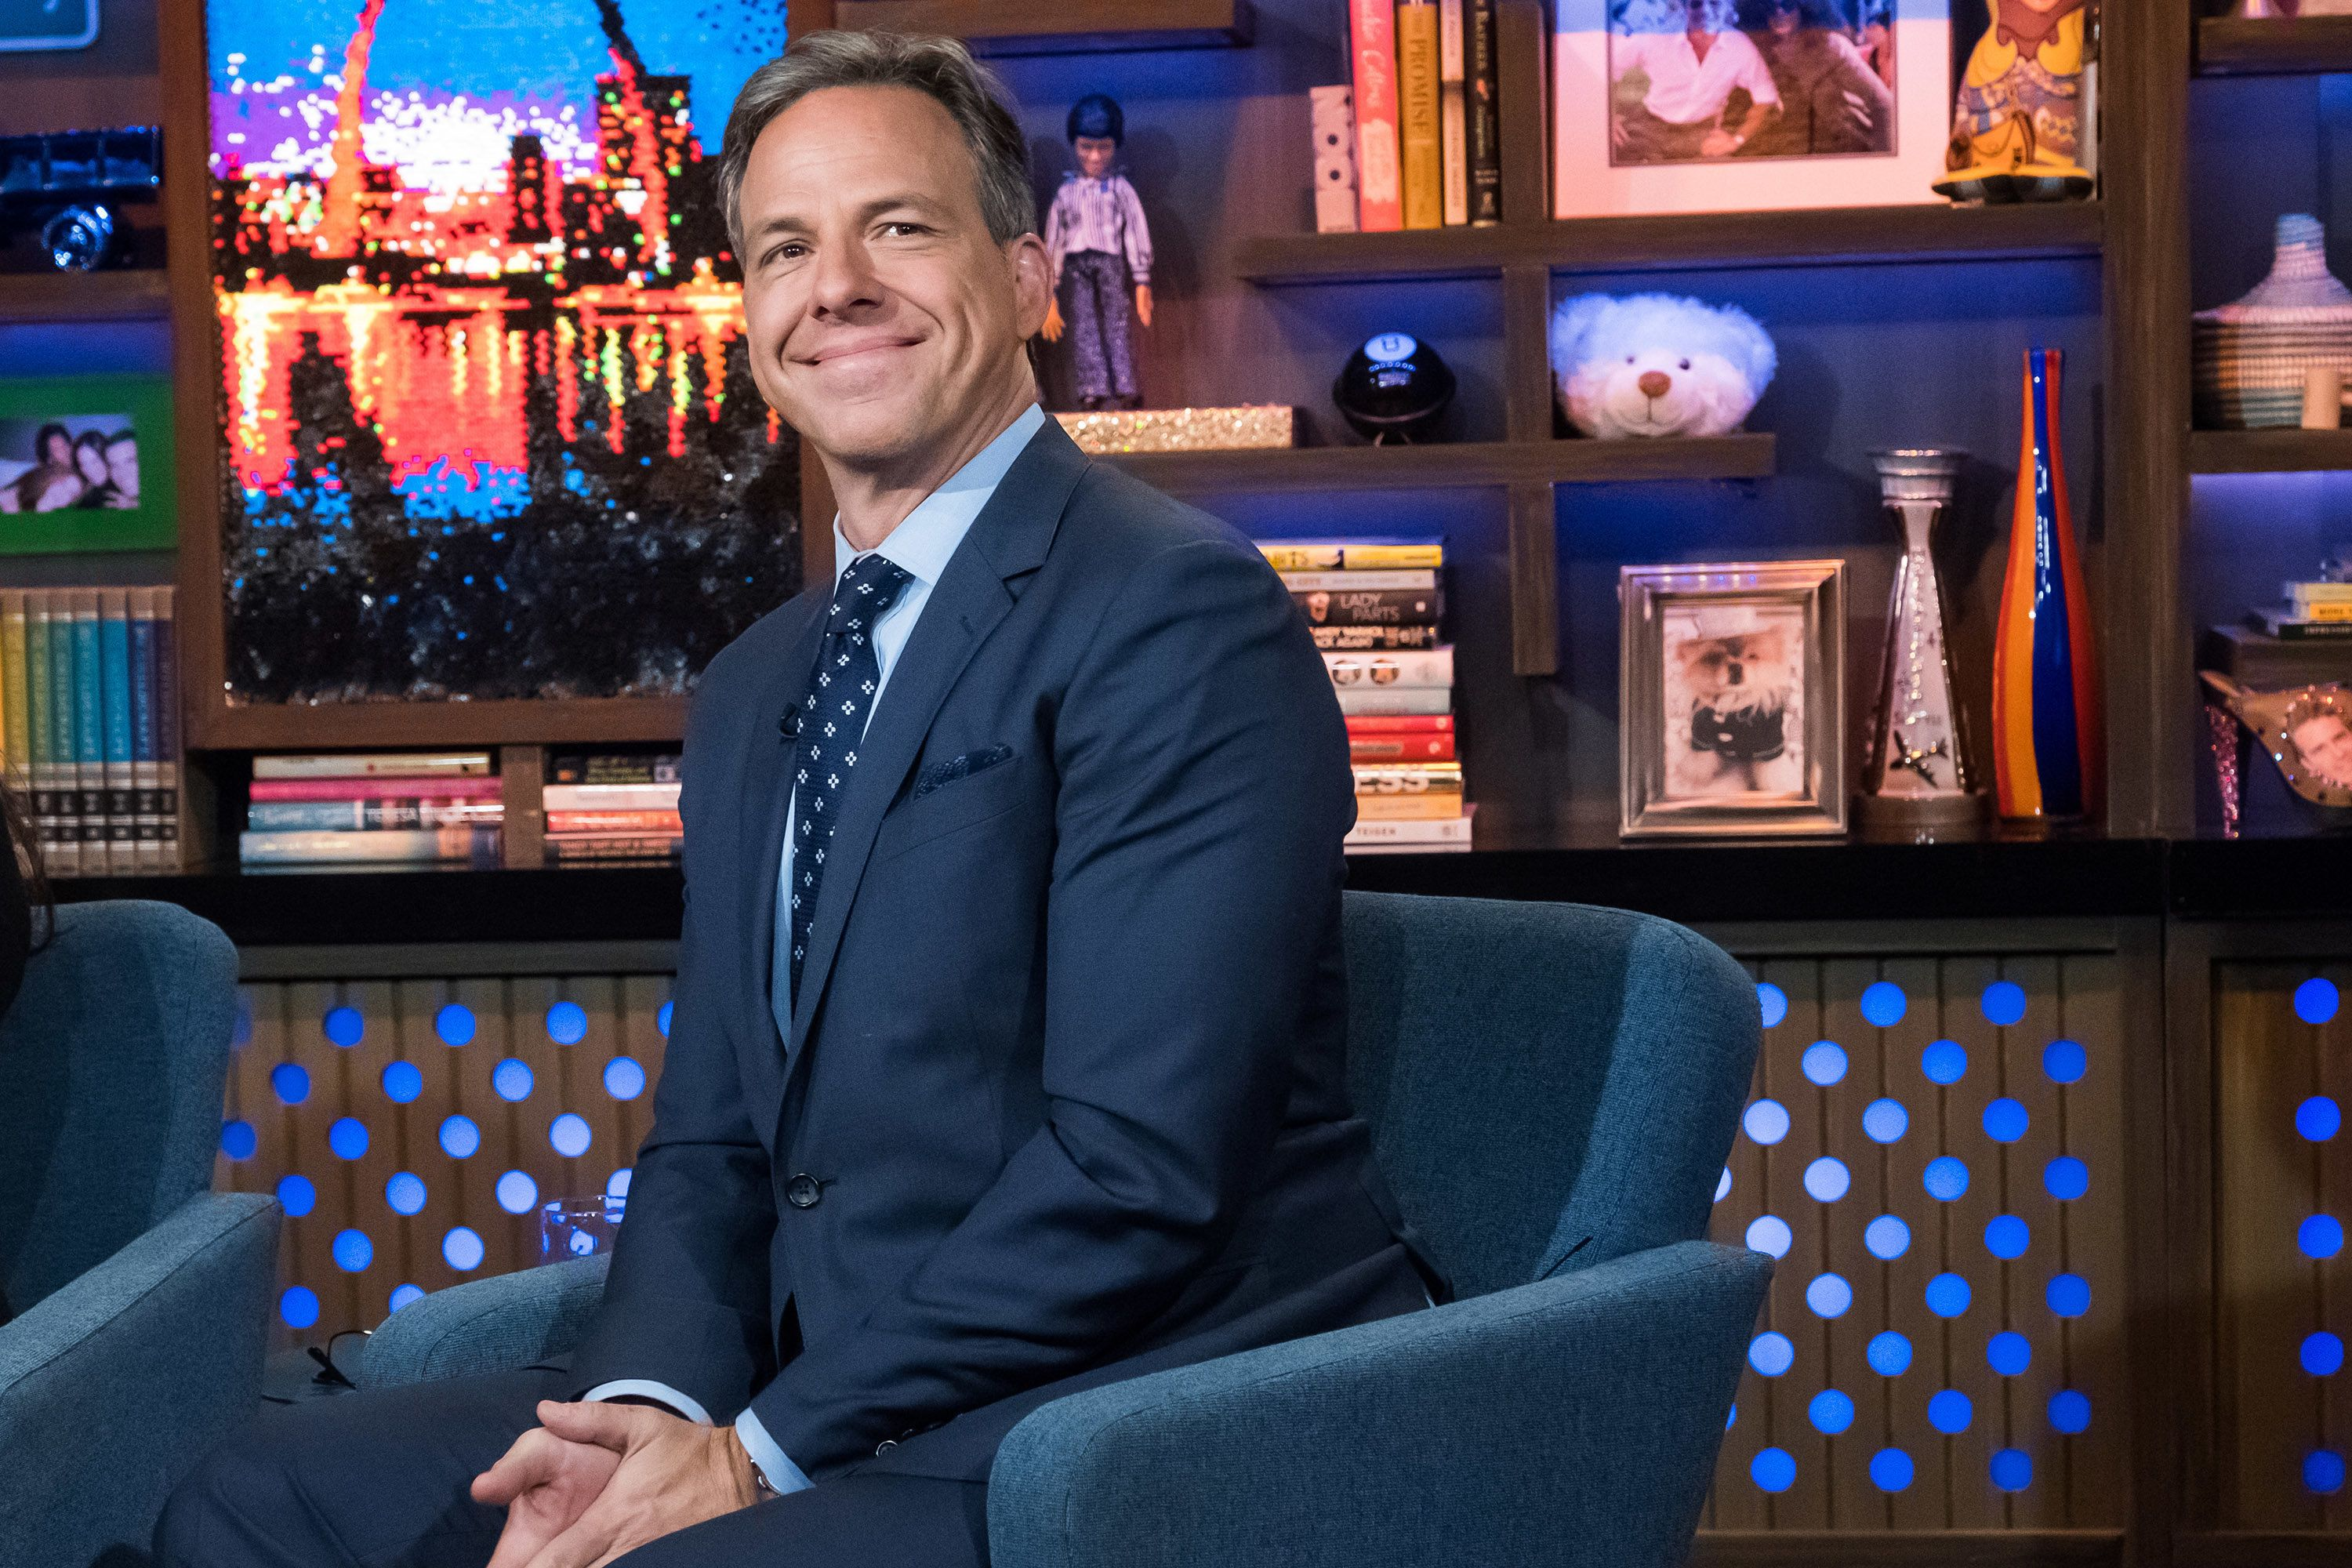 WATCH WHAT HAPPENS LIVE WITH ANDY COHEN -- Pictured: Jake Tapper -- (Photo by: Charles Sykes/Bravo/NBCU Photo Bank via Getty Images)